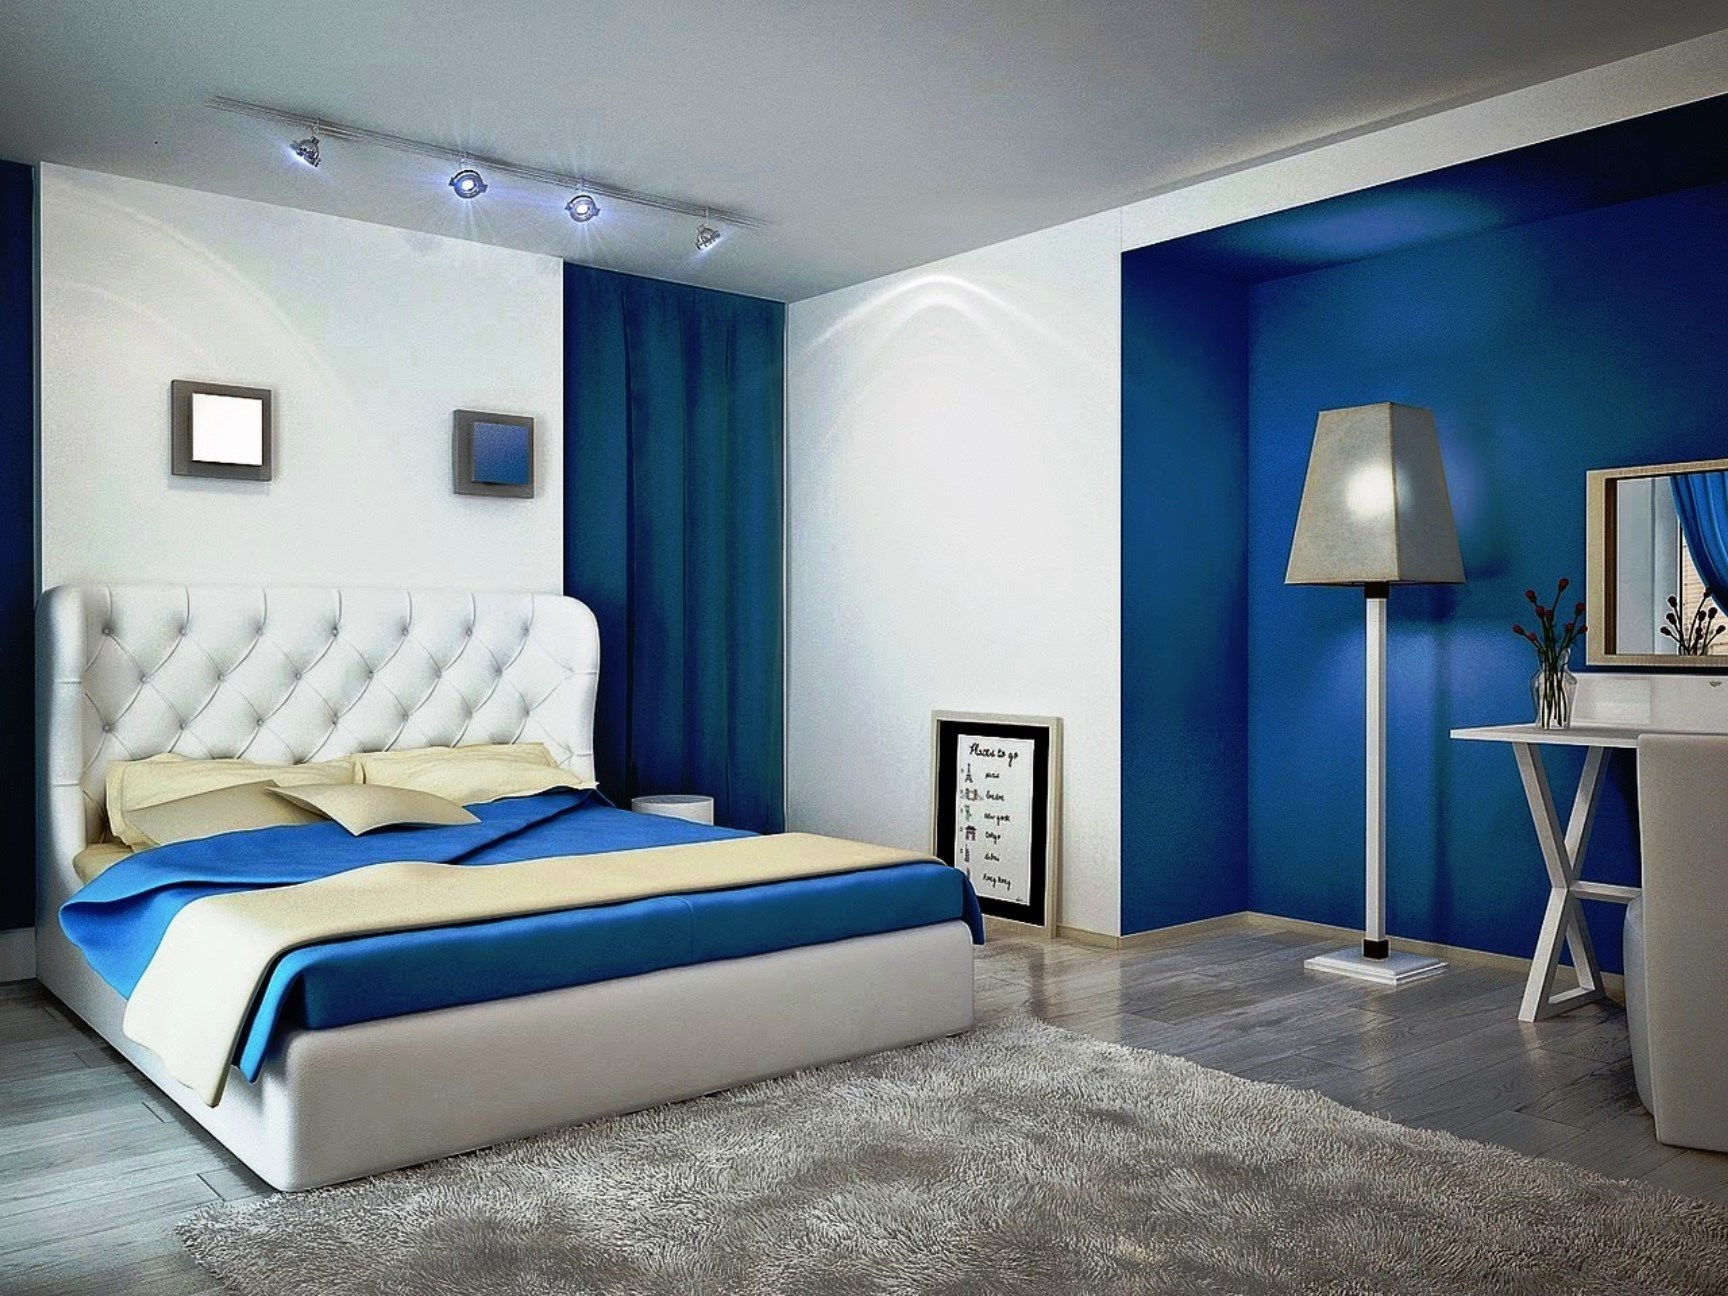 Image of: Bedroom Color Schemes Ideas